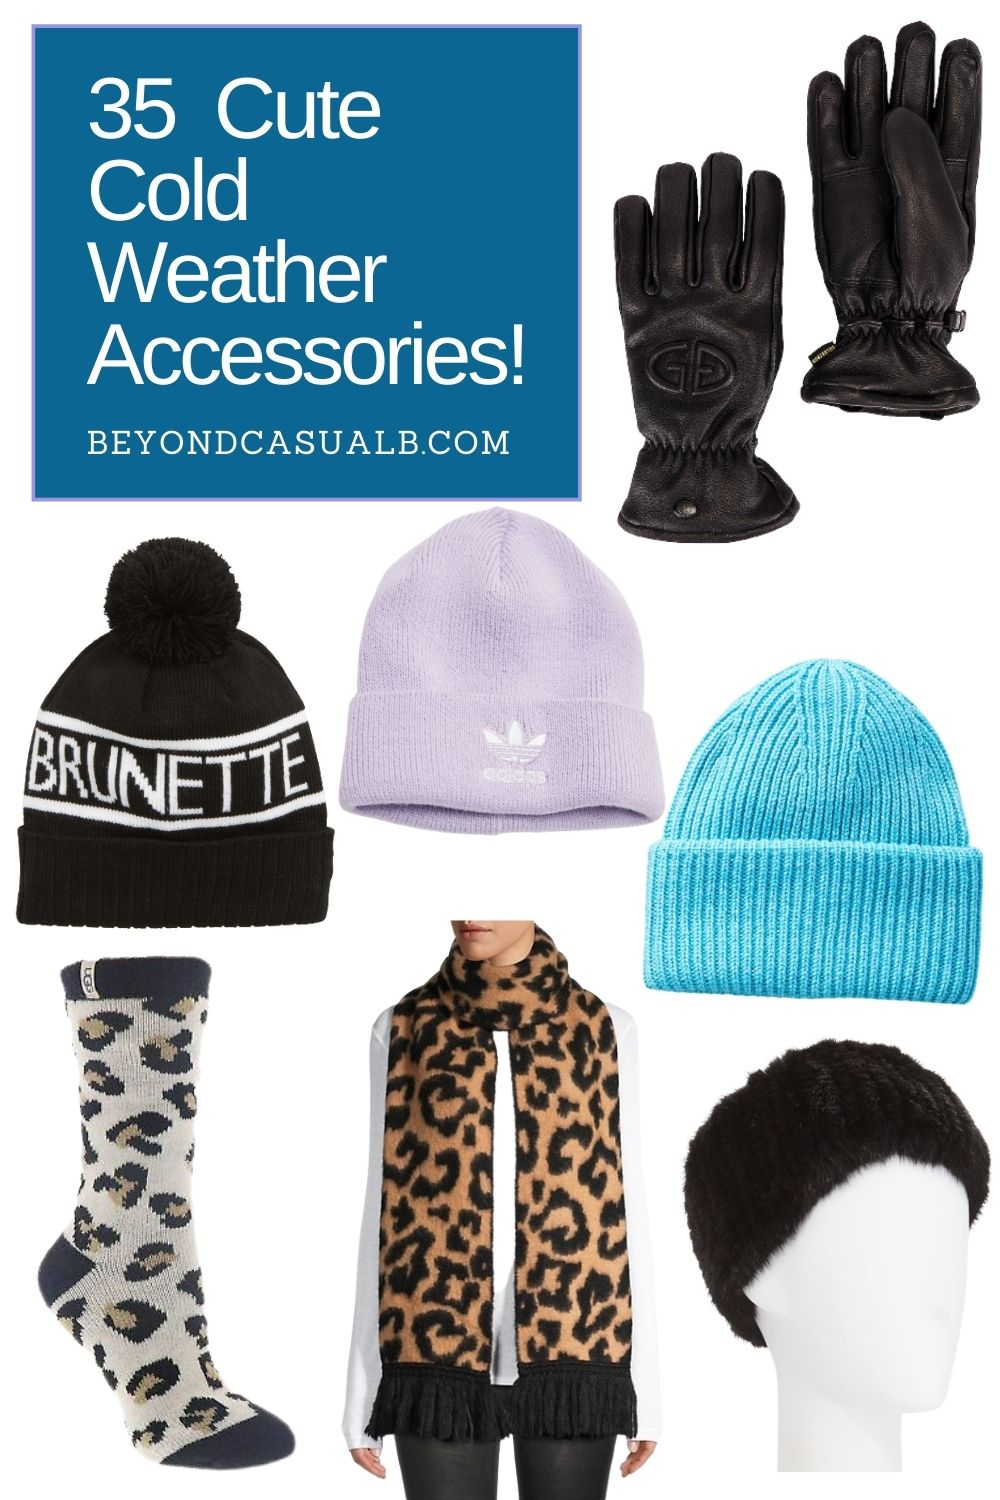 35 Cute Cold Weather Accessories